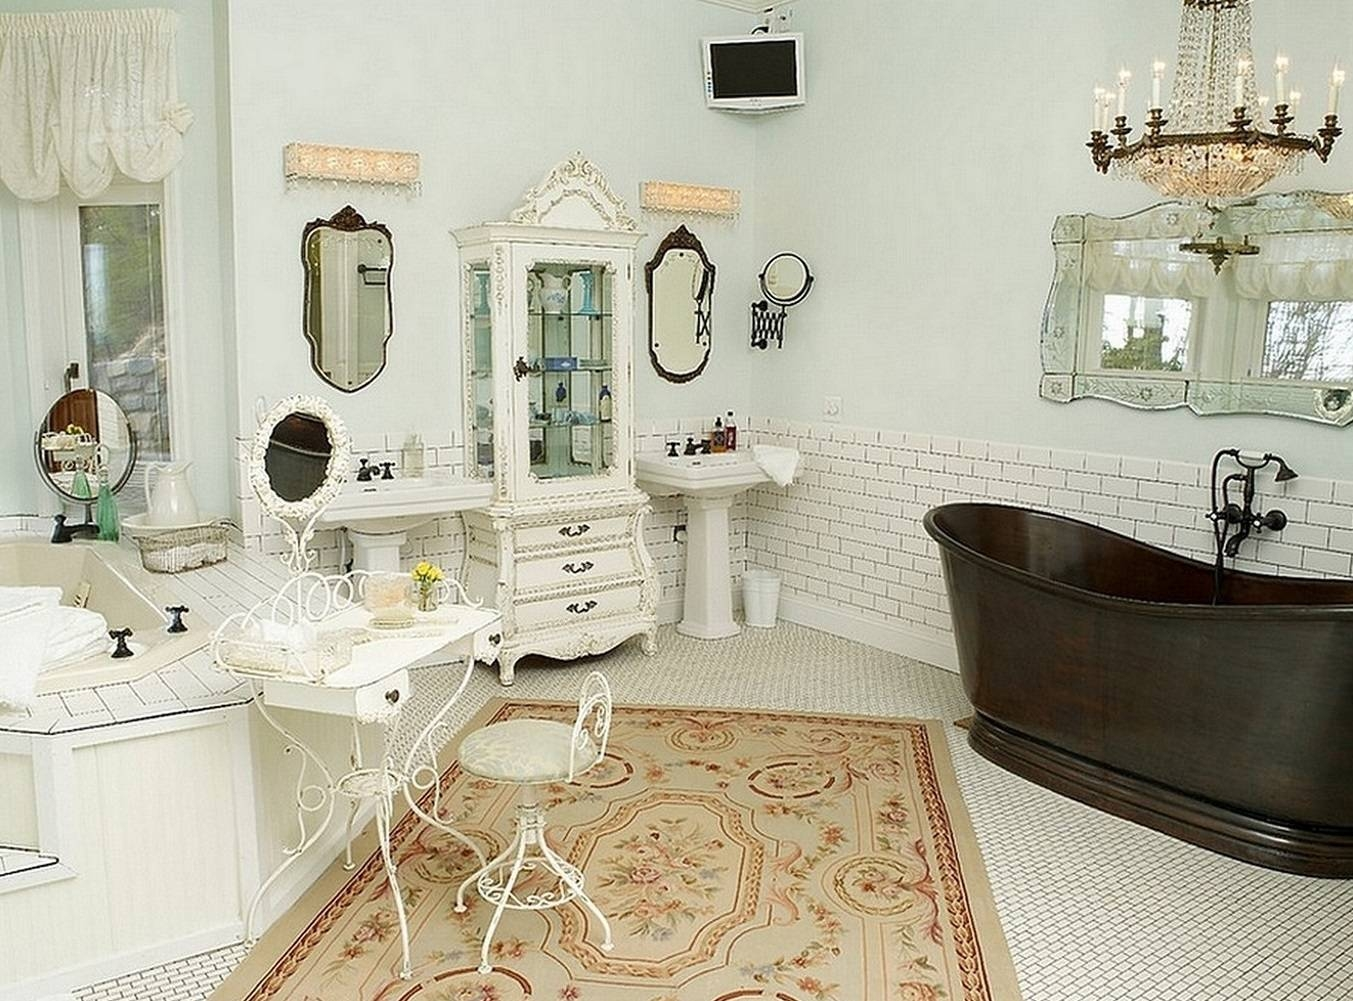 Shabby Chic Bathroom Rugs Ideas Intended For Shabby Chic Bathroom Mirrors (View 7 of 15)